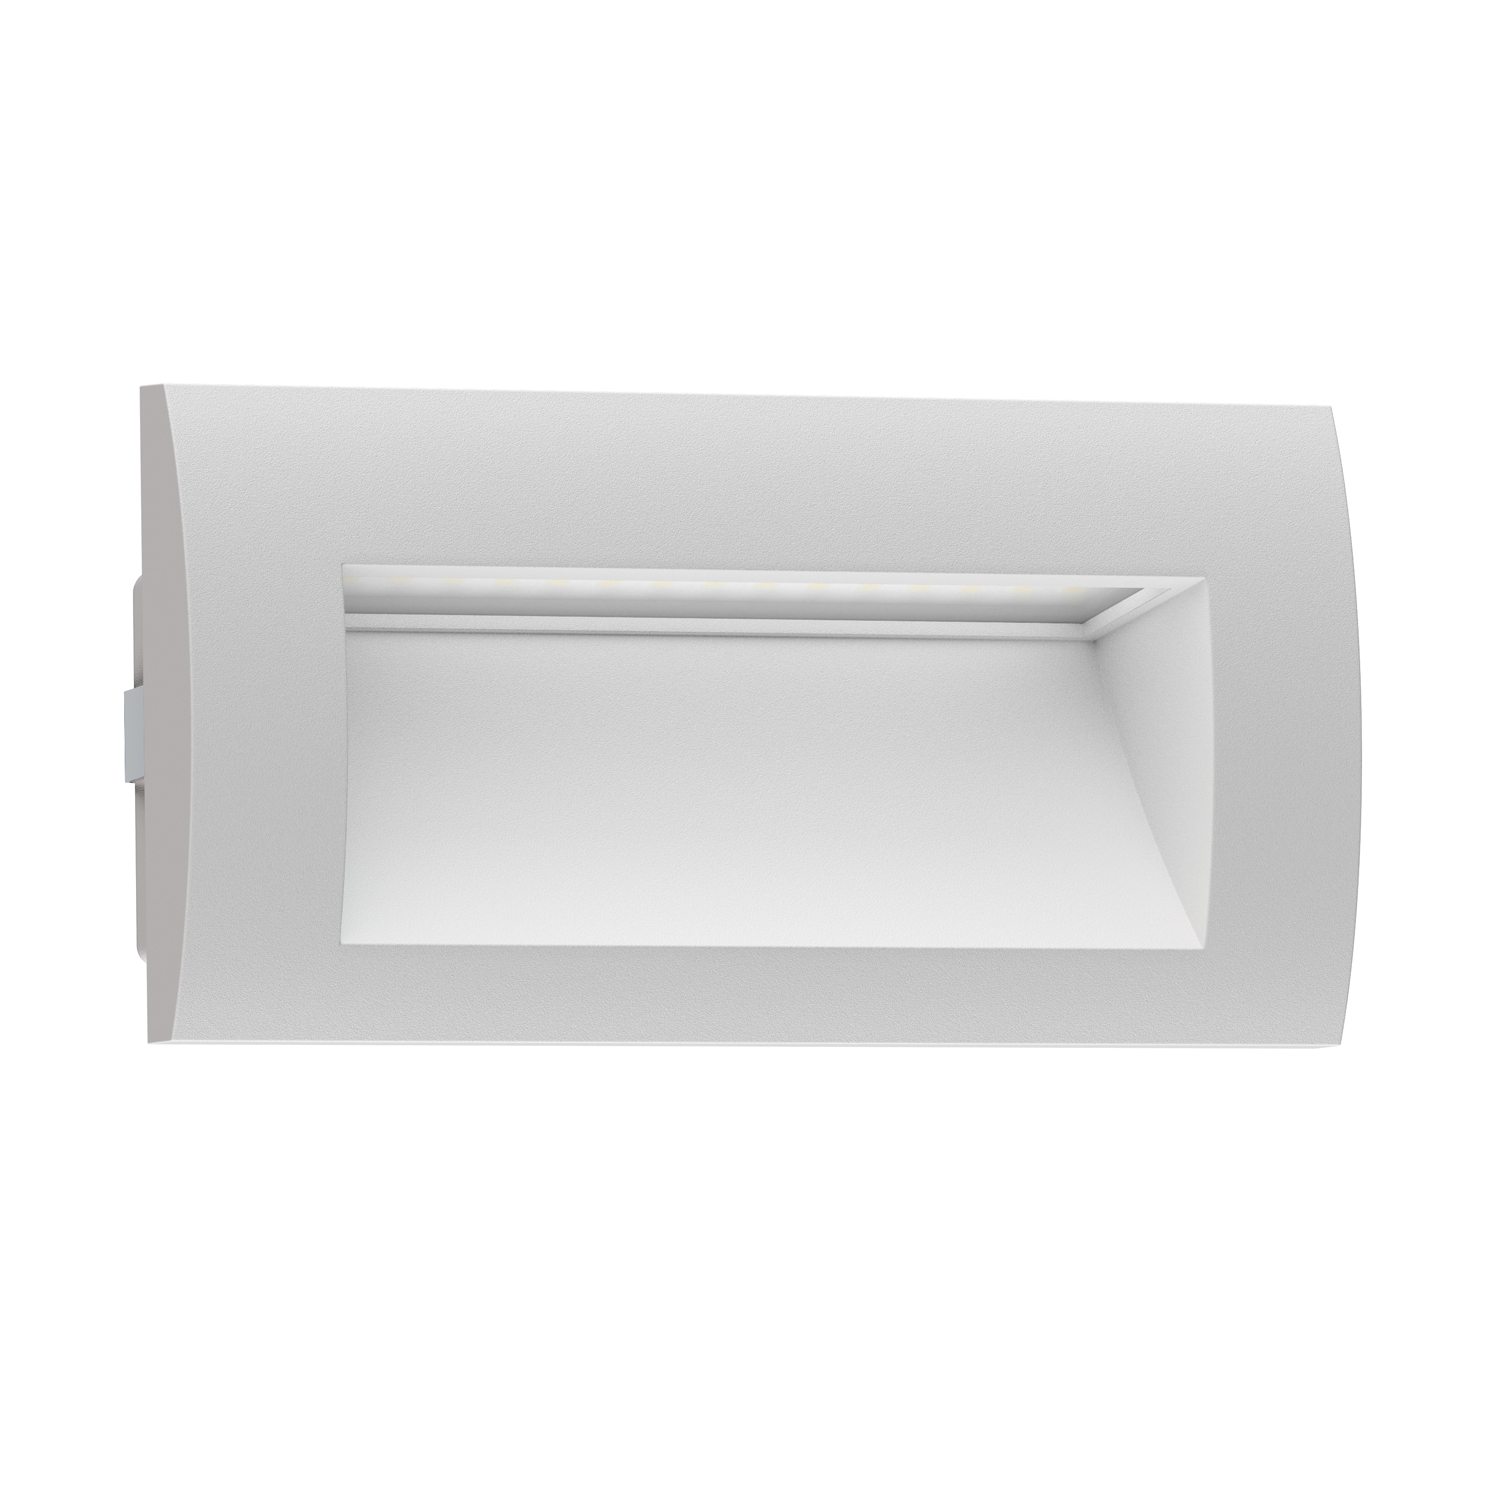 Ledscom led recessed wall light zibal for outdoor warm white ledscom led recessed wall light zibal for outdoor warm white 140x70mm aloadofball Image collections